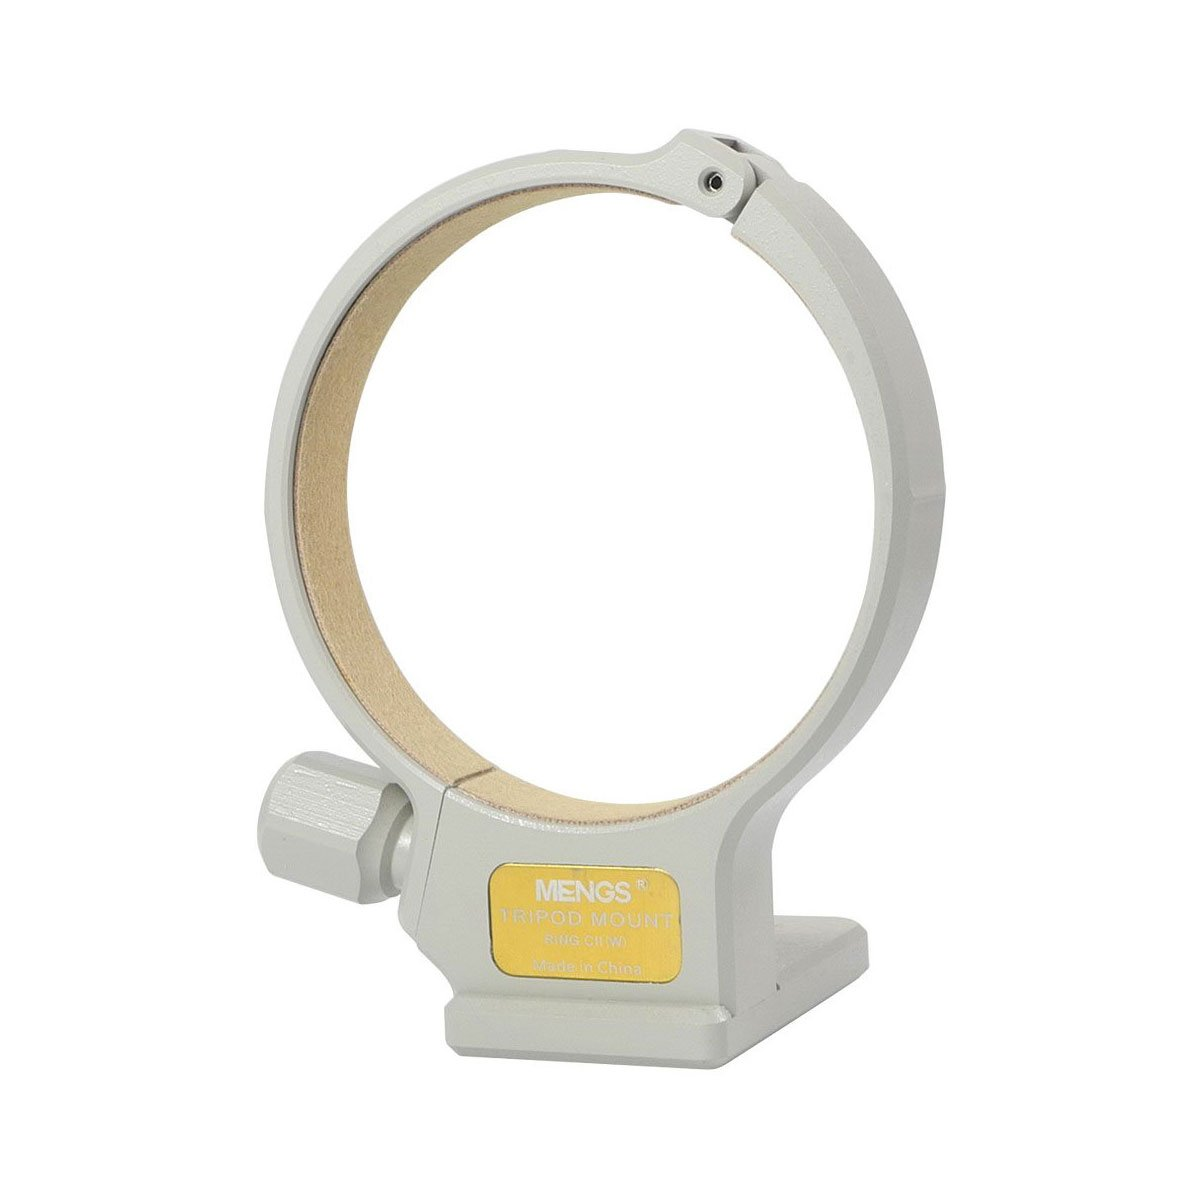 MENGS C II (W) Tripod Mount Collar Ring Aluminum Alloy For Canon EF 70-300mm f/4-5.6L IS USM